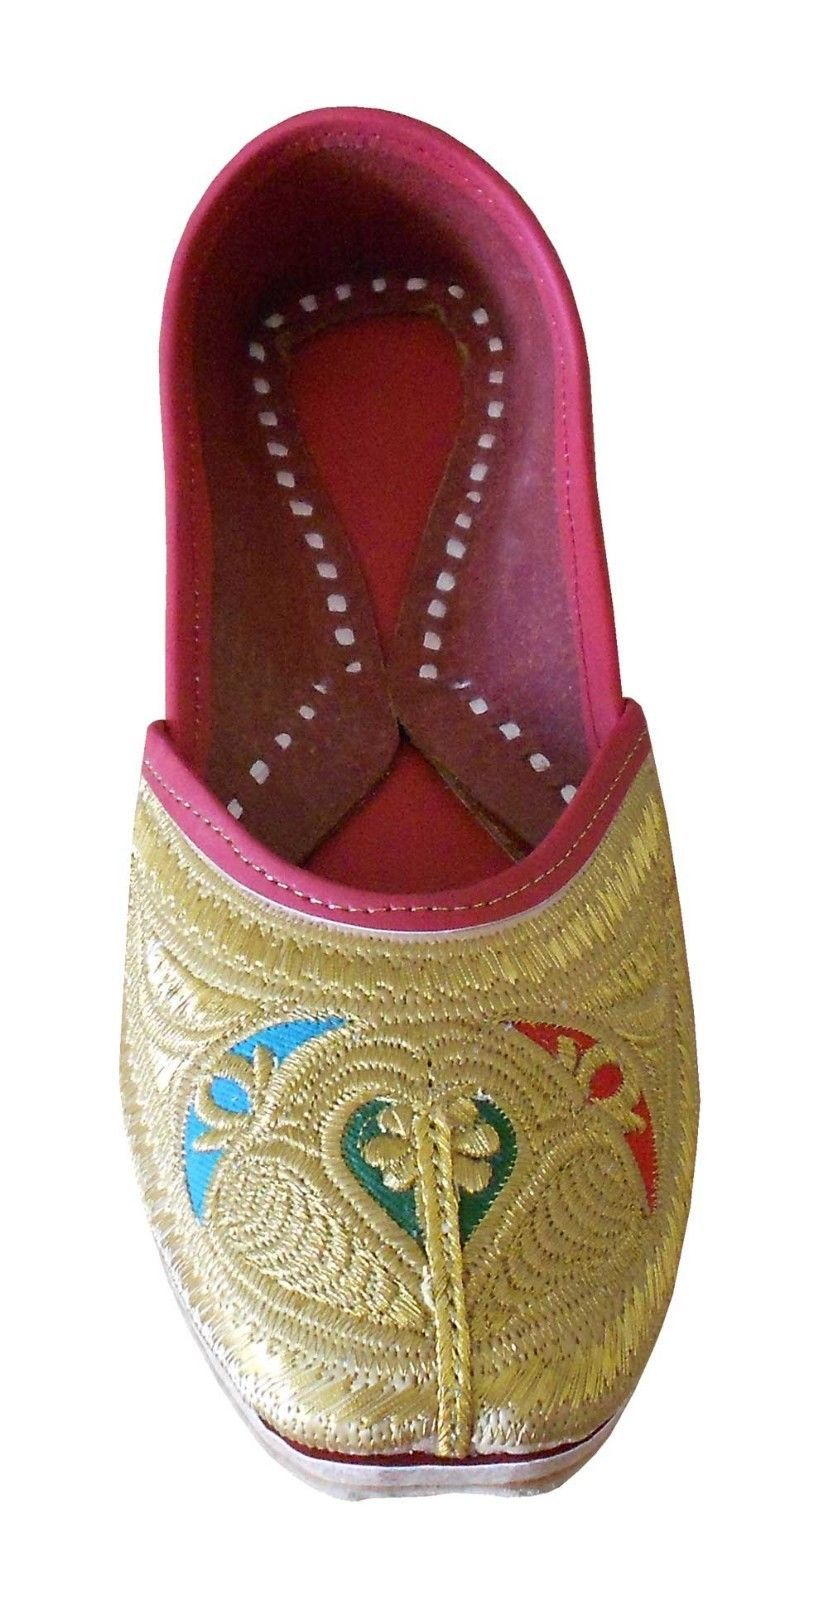 Primary image for Women Shoes Indian Handmade Mojaries Leather Jutti Gold Flip Flops Flat US 7